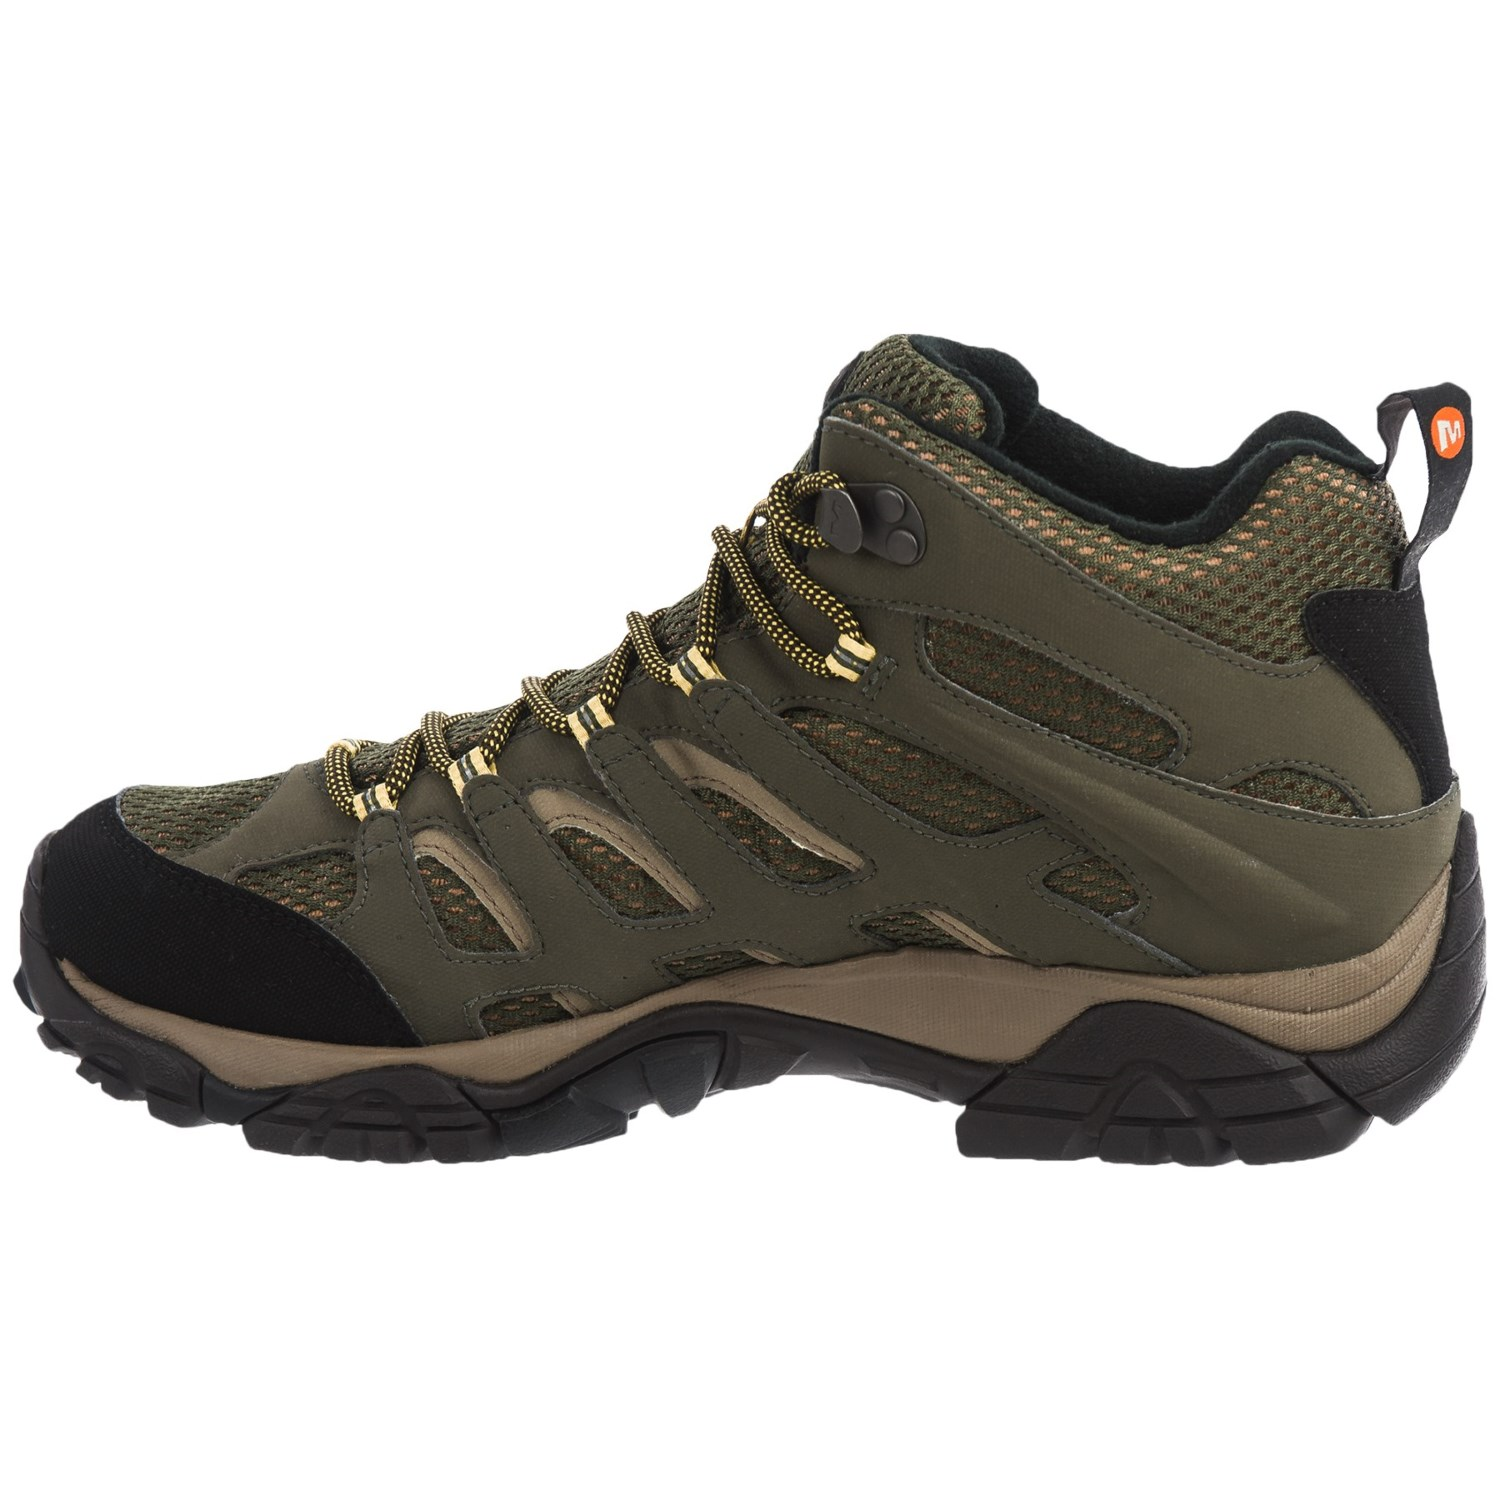 Merrell Moab Mid Hiking Boots (For Men) - Save 38%